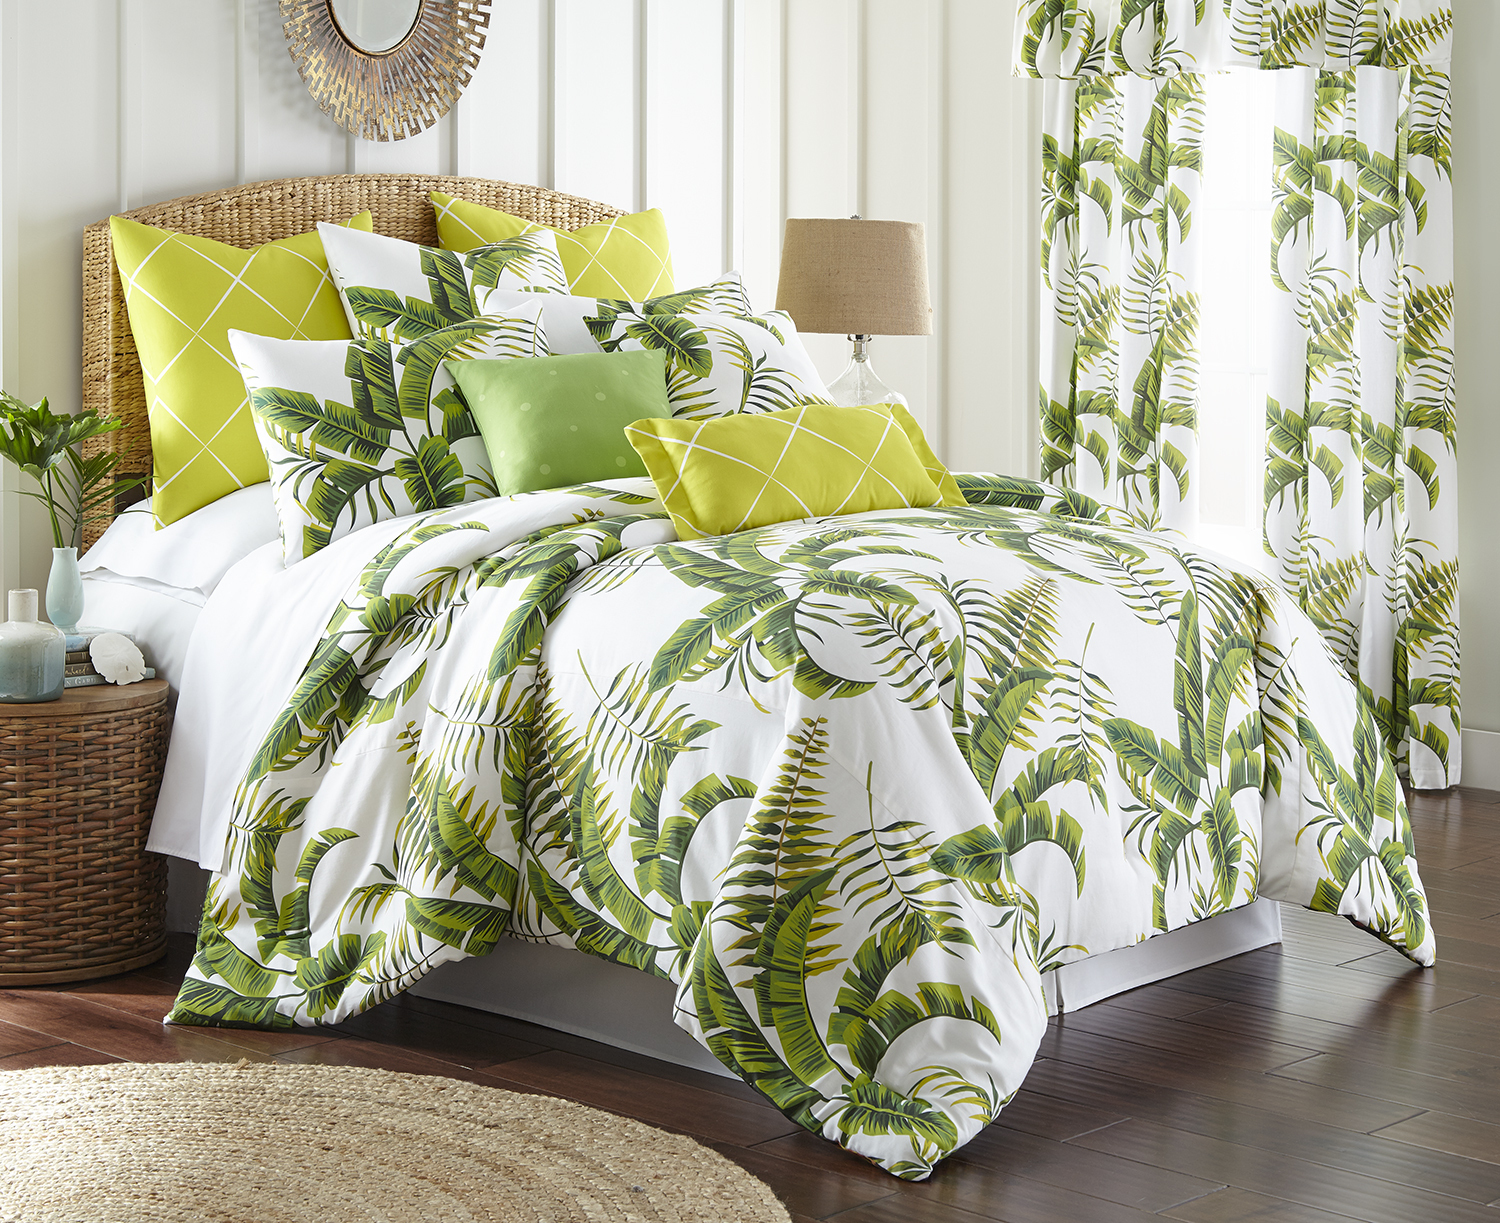 Tropic Bay By Colcha Linens Beddingsuperstore Com